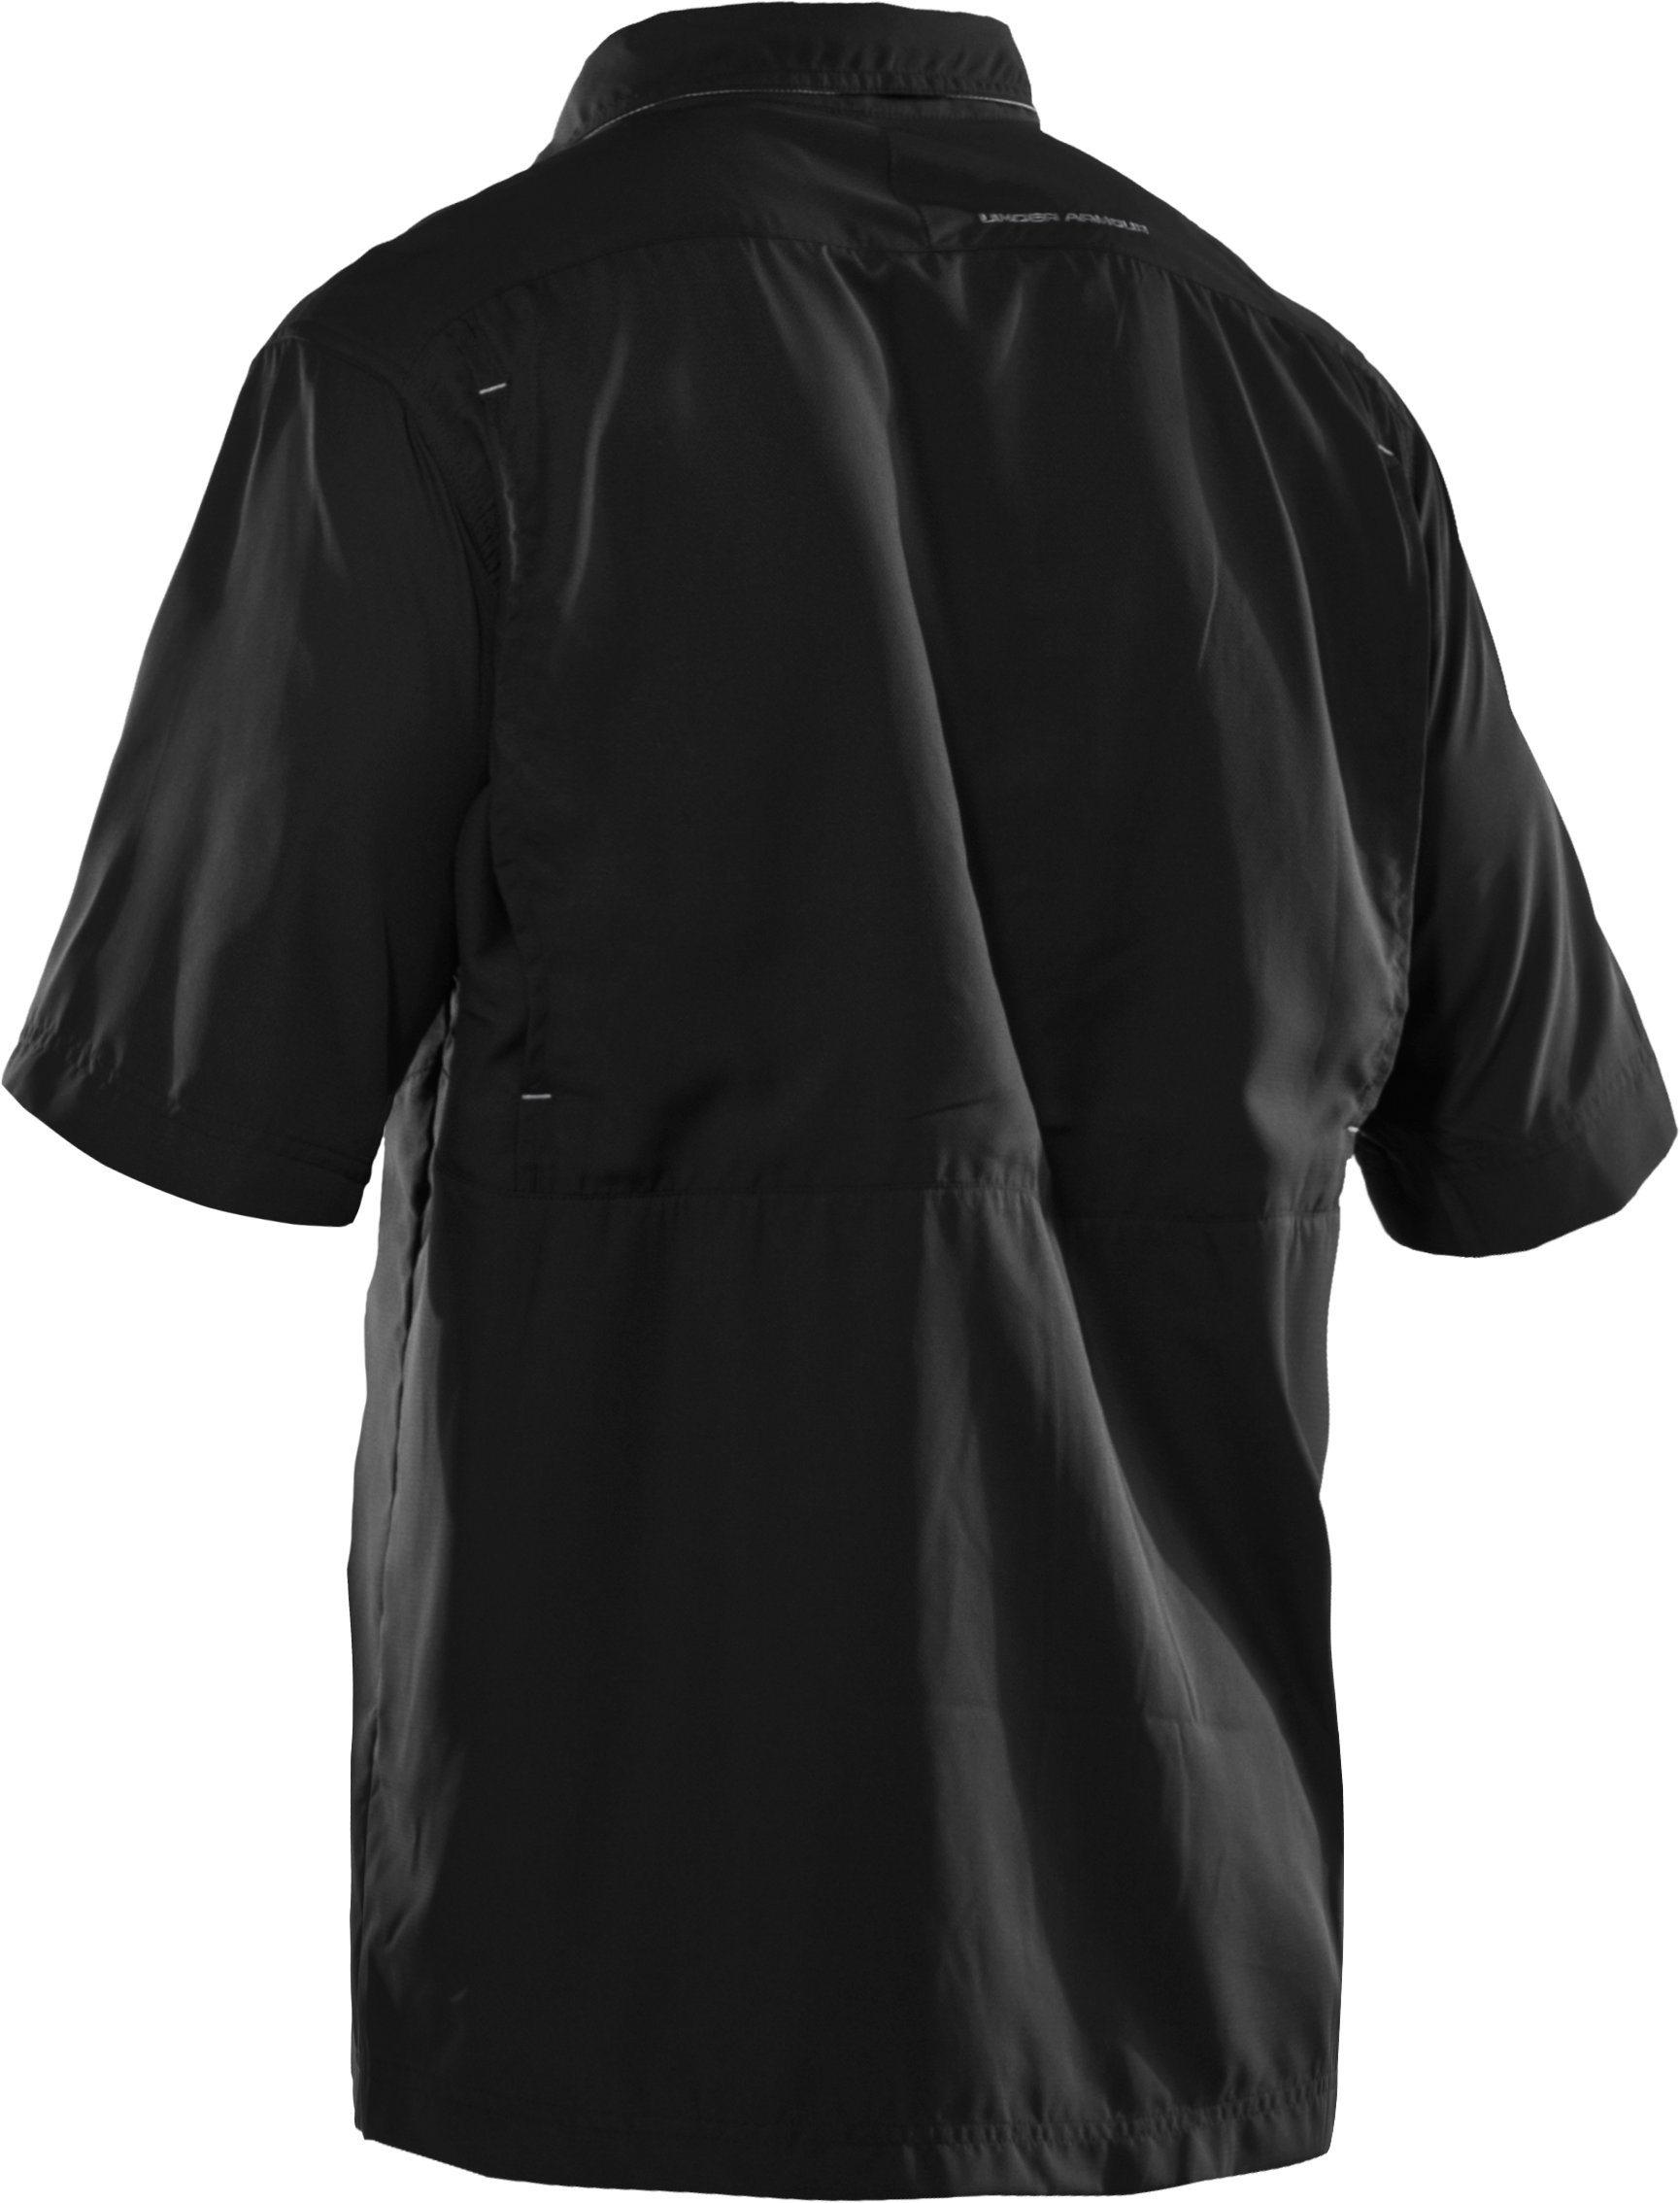 Men's Flats Guide Short Sleeve Shirt, Black